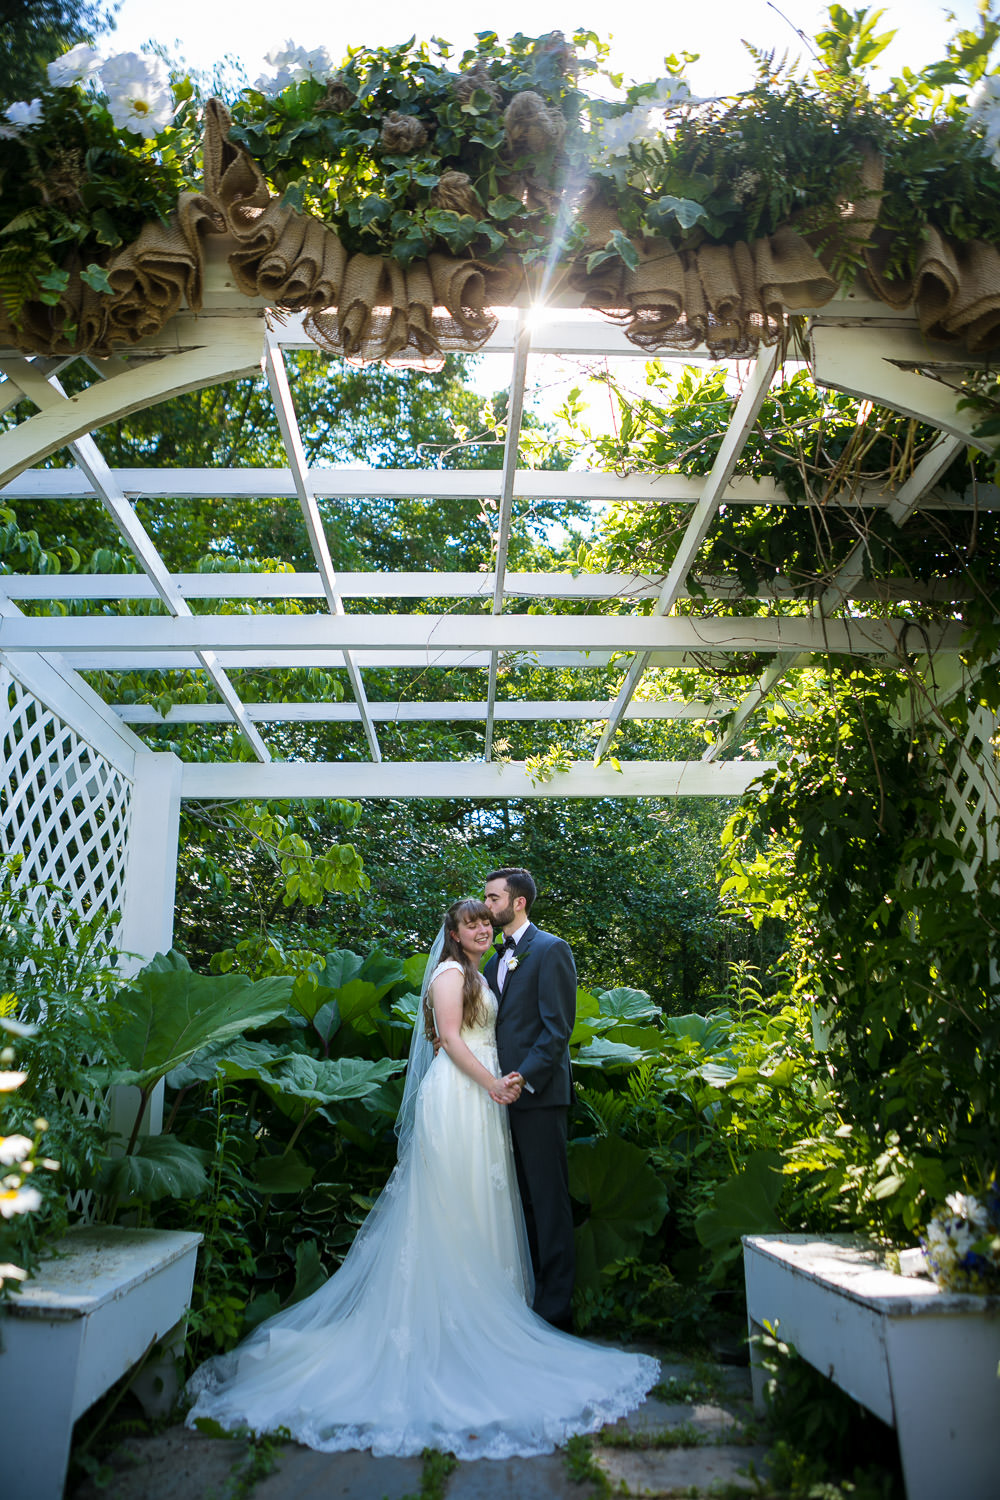 hartmans herb farm weddings, under the gazebo, bride and groom portraits